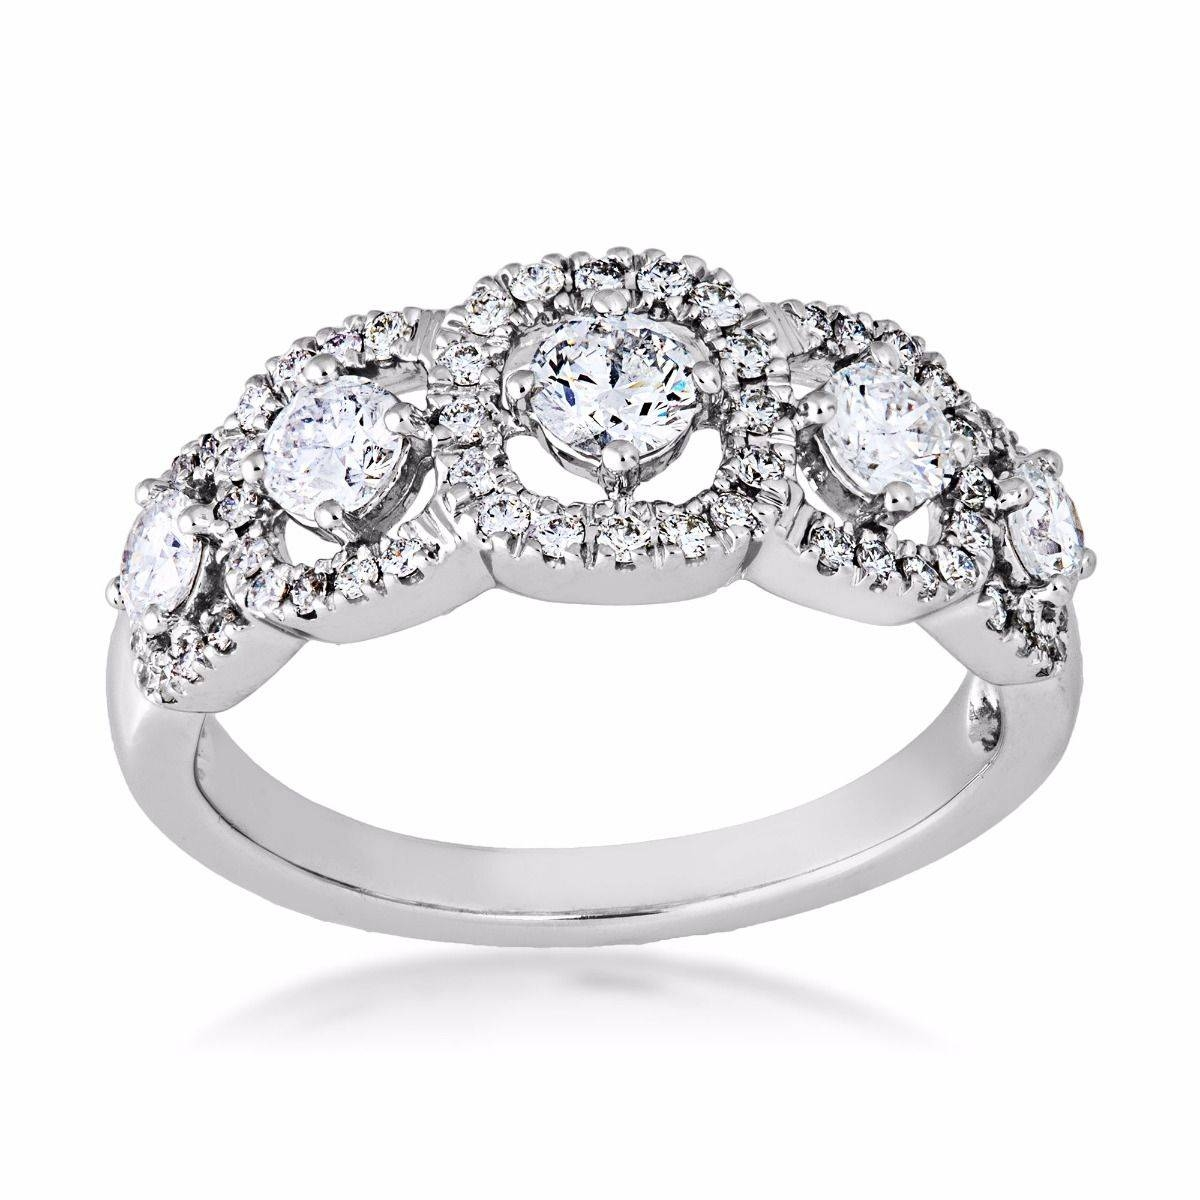 Women's Diamond Anniversary Bands – Shop Anniversary Rings, Bands In Most Recent Diamonds Anniversary Rings (View 25 of 25)